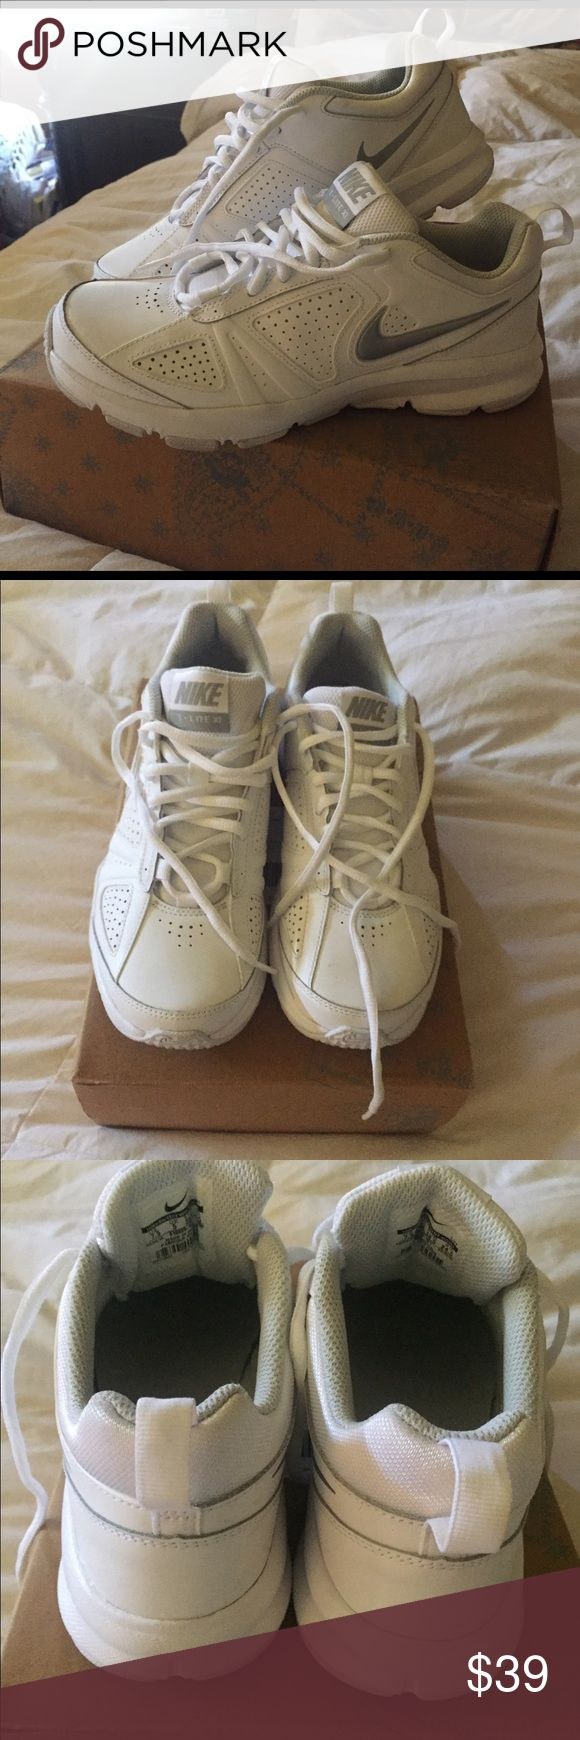 Nike sneakers White Nike's that are just a half size too small for me. I tried to wear them twice. Not working!! I'd have loved to list as brand new but I wore them twice. Once around the house, once outside for a walk... I need an 8! 😳 I will list these at a steal of a price..... sad to see them go but maybe I can find white size 8 on Posh!! 💕 very comfy by the way! Just not proper size for me. I should know better! Nike Shoes Athletic Shoes